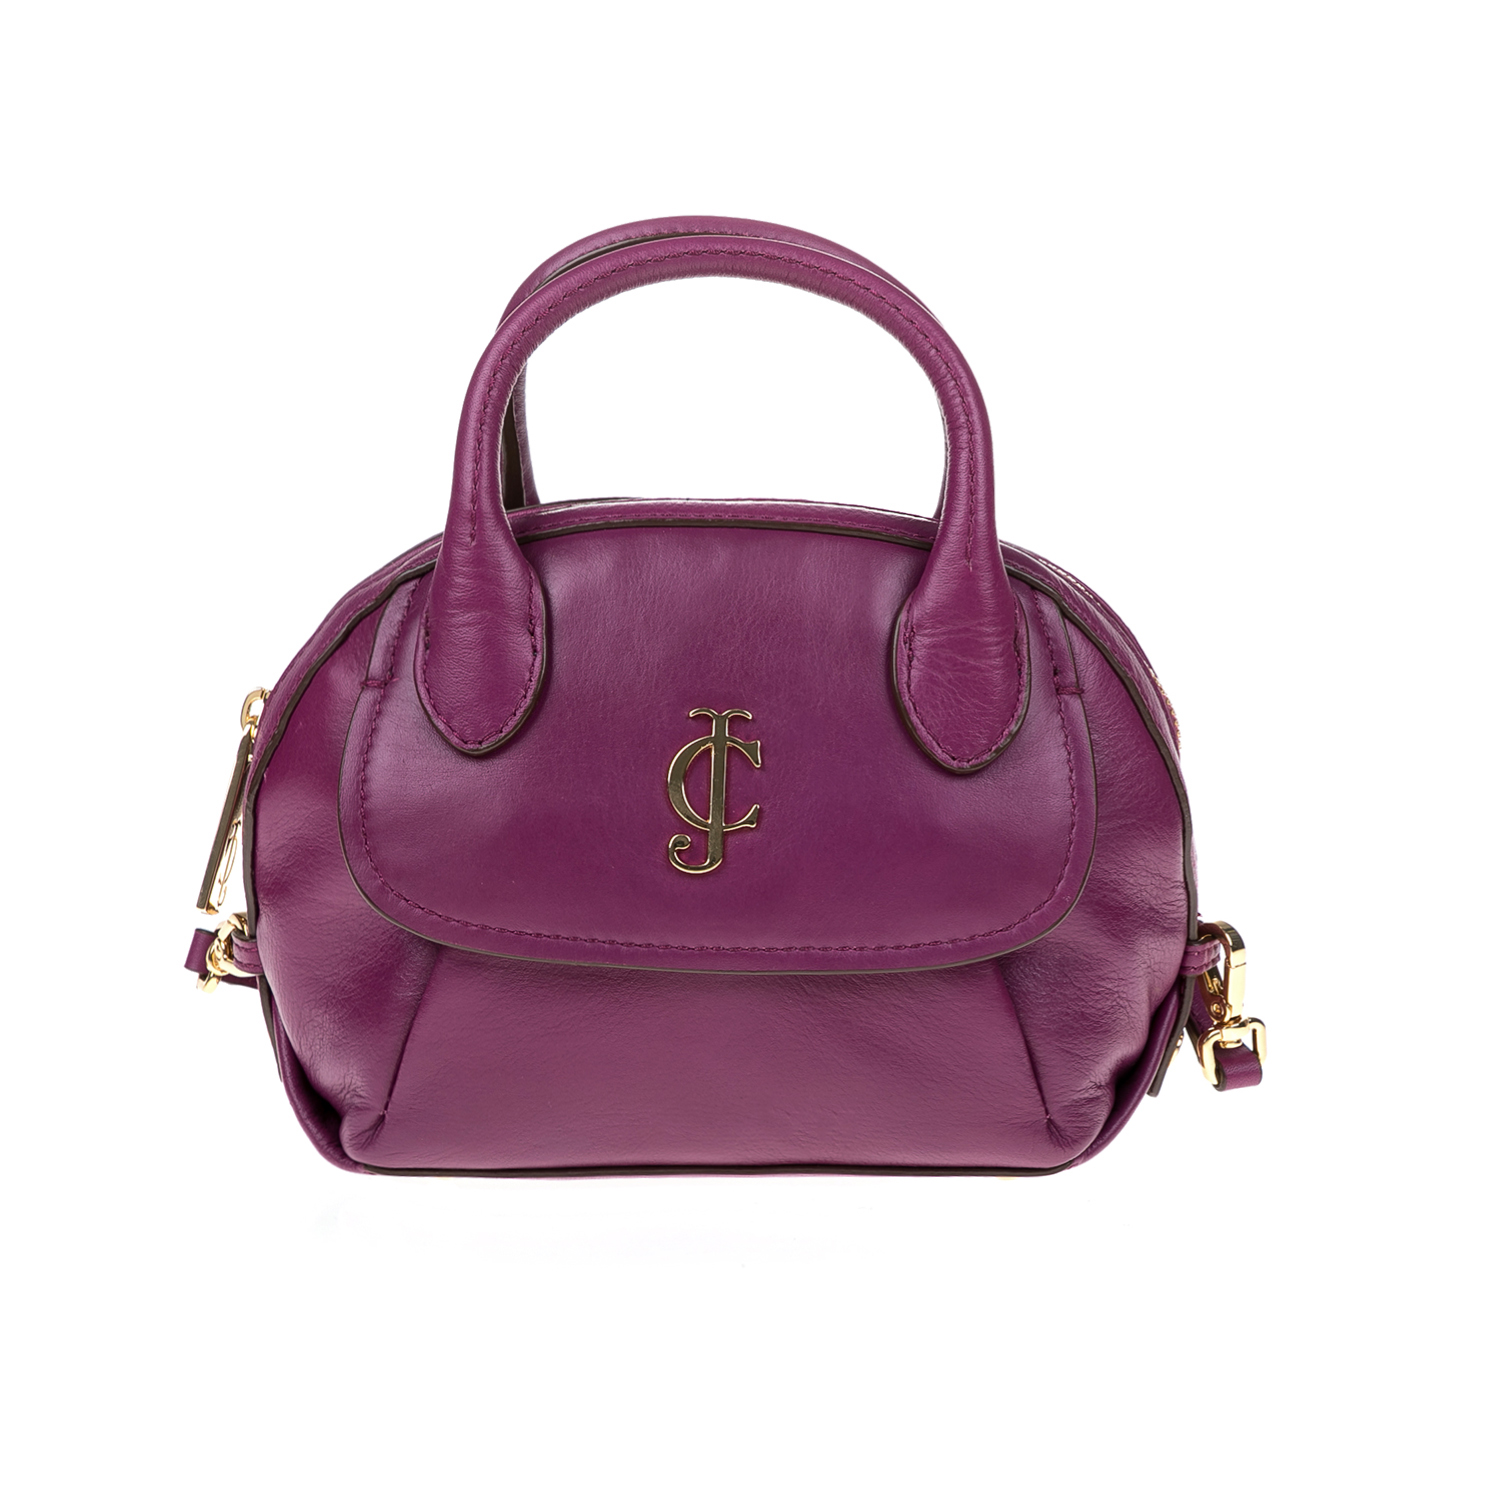 JUICY COUTURE – Γυναικεία τσάντα JUICY COUTURE μοβ